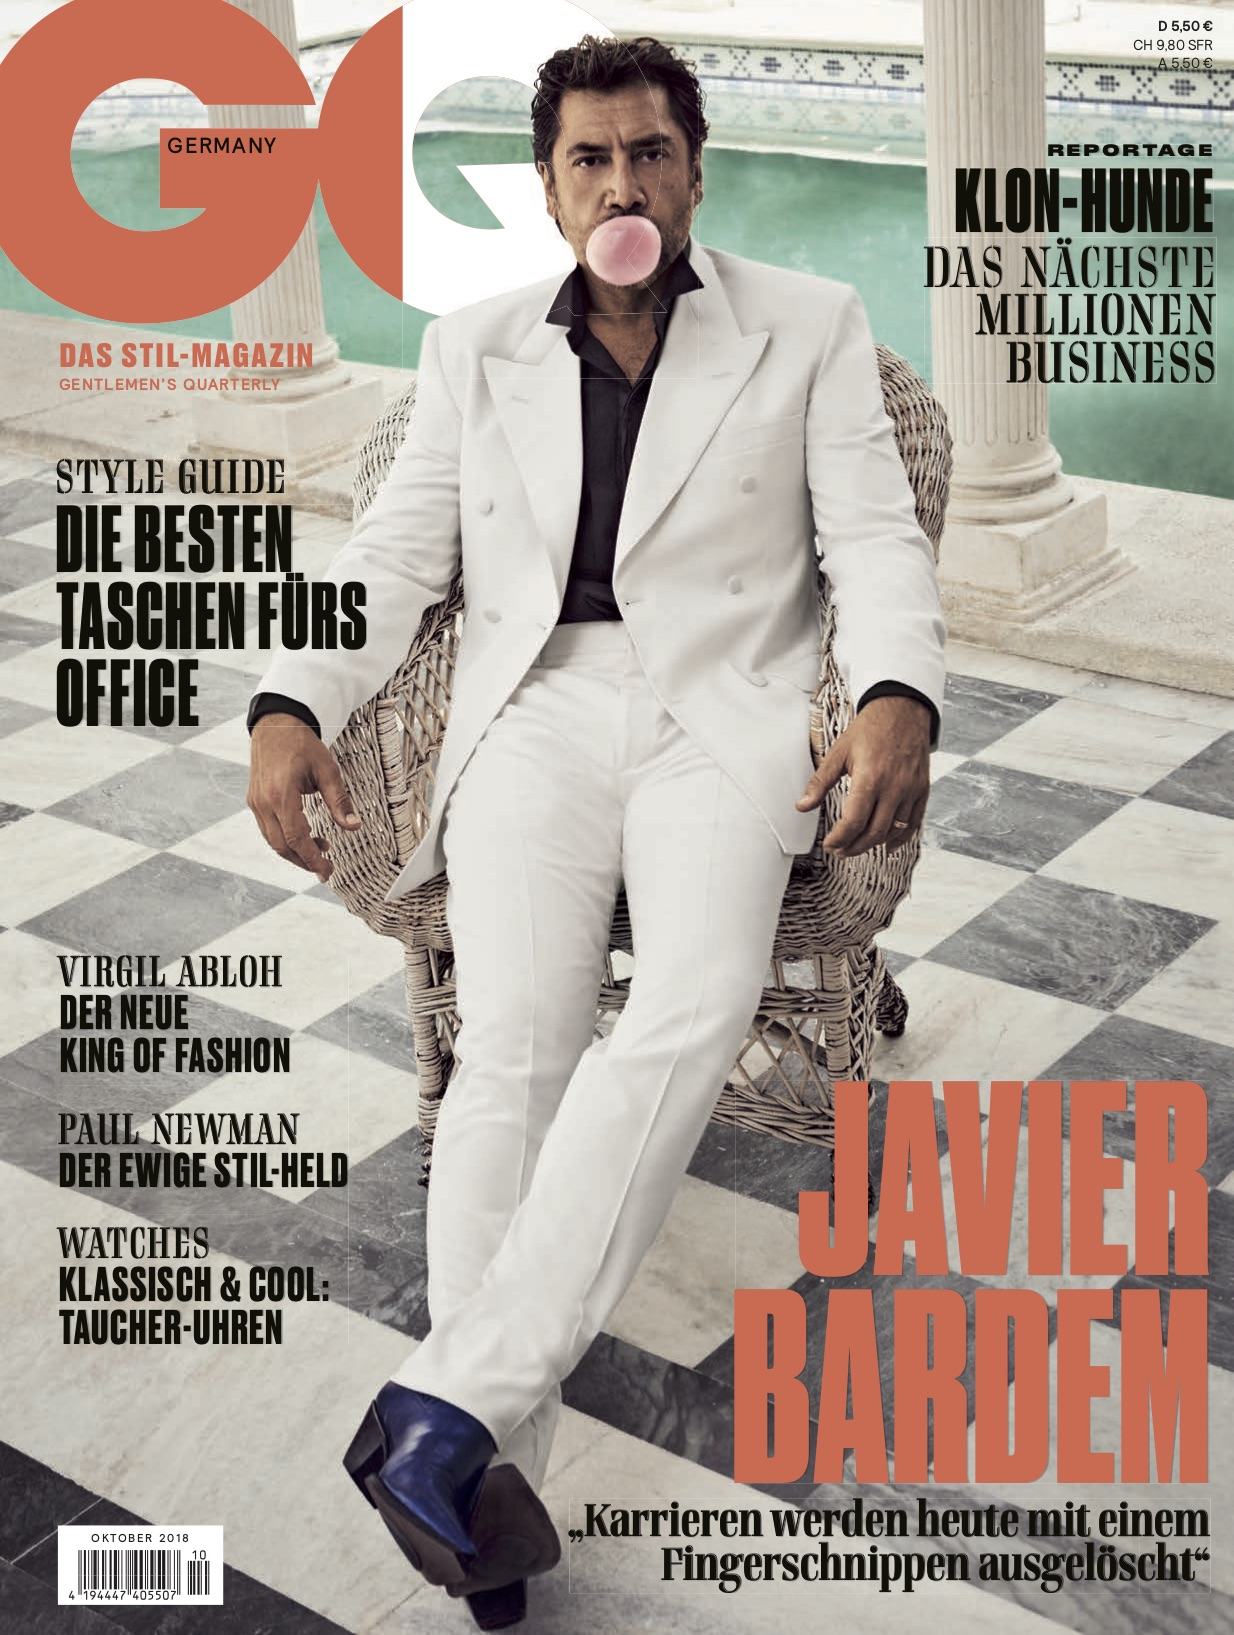 GQ with Javier Bardem 1 by Claudia ENGLMANN